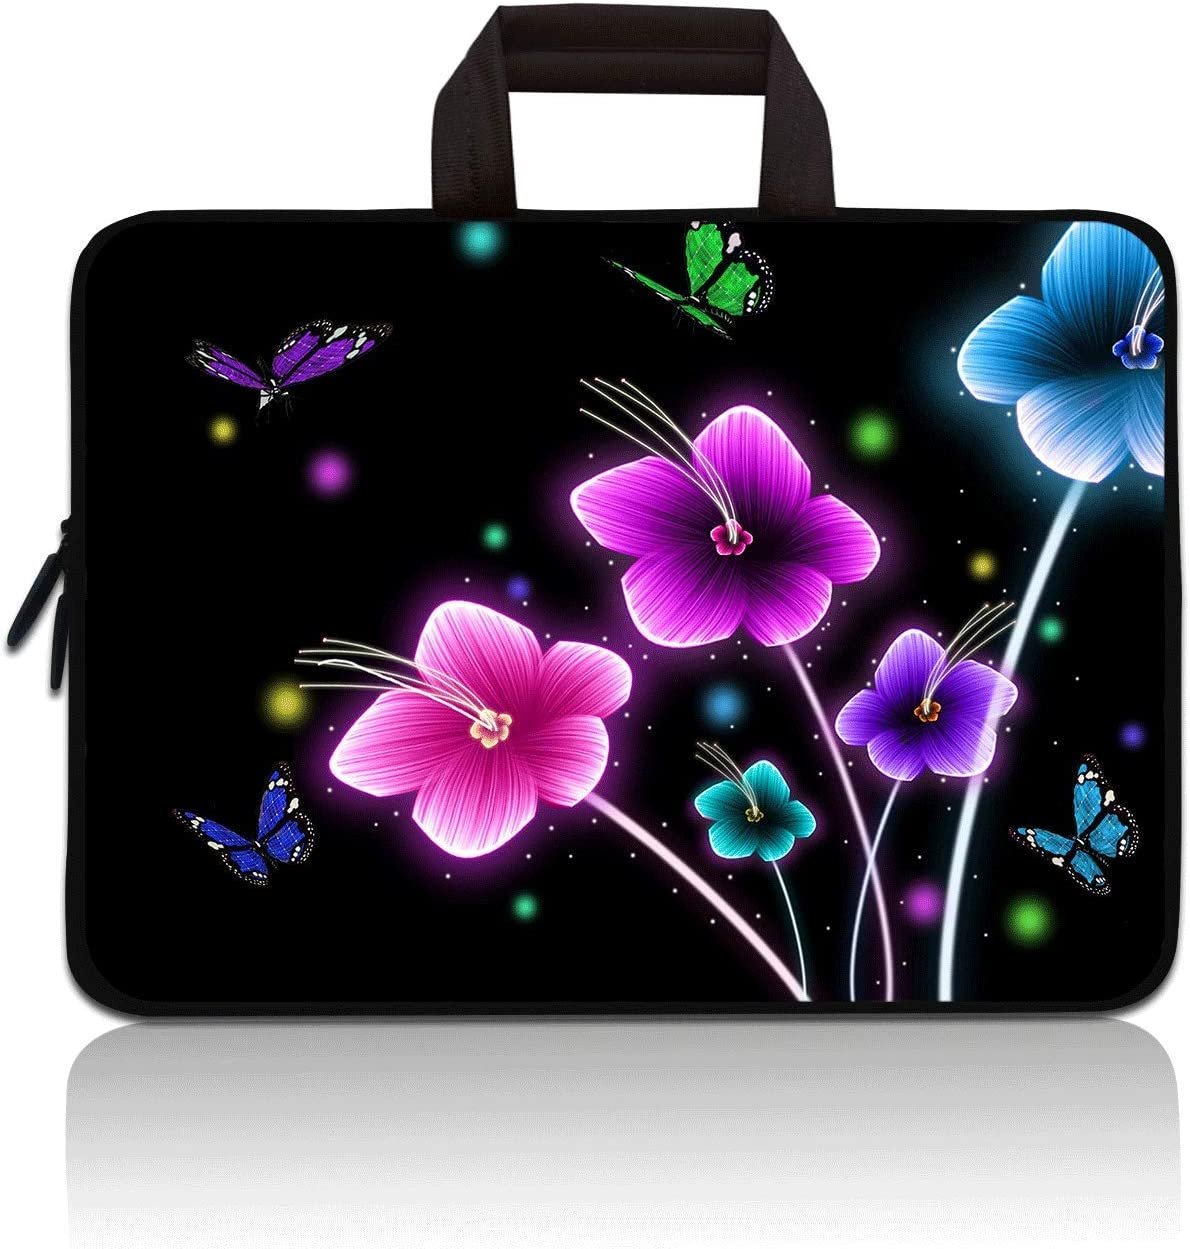 11 11.6 12 12.1 12.5 inch Laptop Carrying Bag Chromebook Case Notebook Ultrabook Bag Tablet Cover Neoprene Sleeve for Apple MacBook Air Samsung Google Acer HP DELL Lenovo Asus (Colorful Flowers)